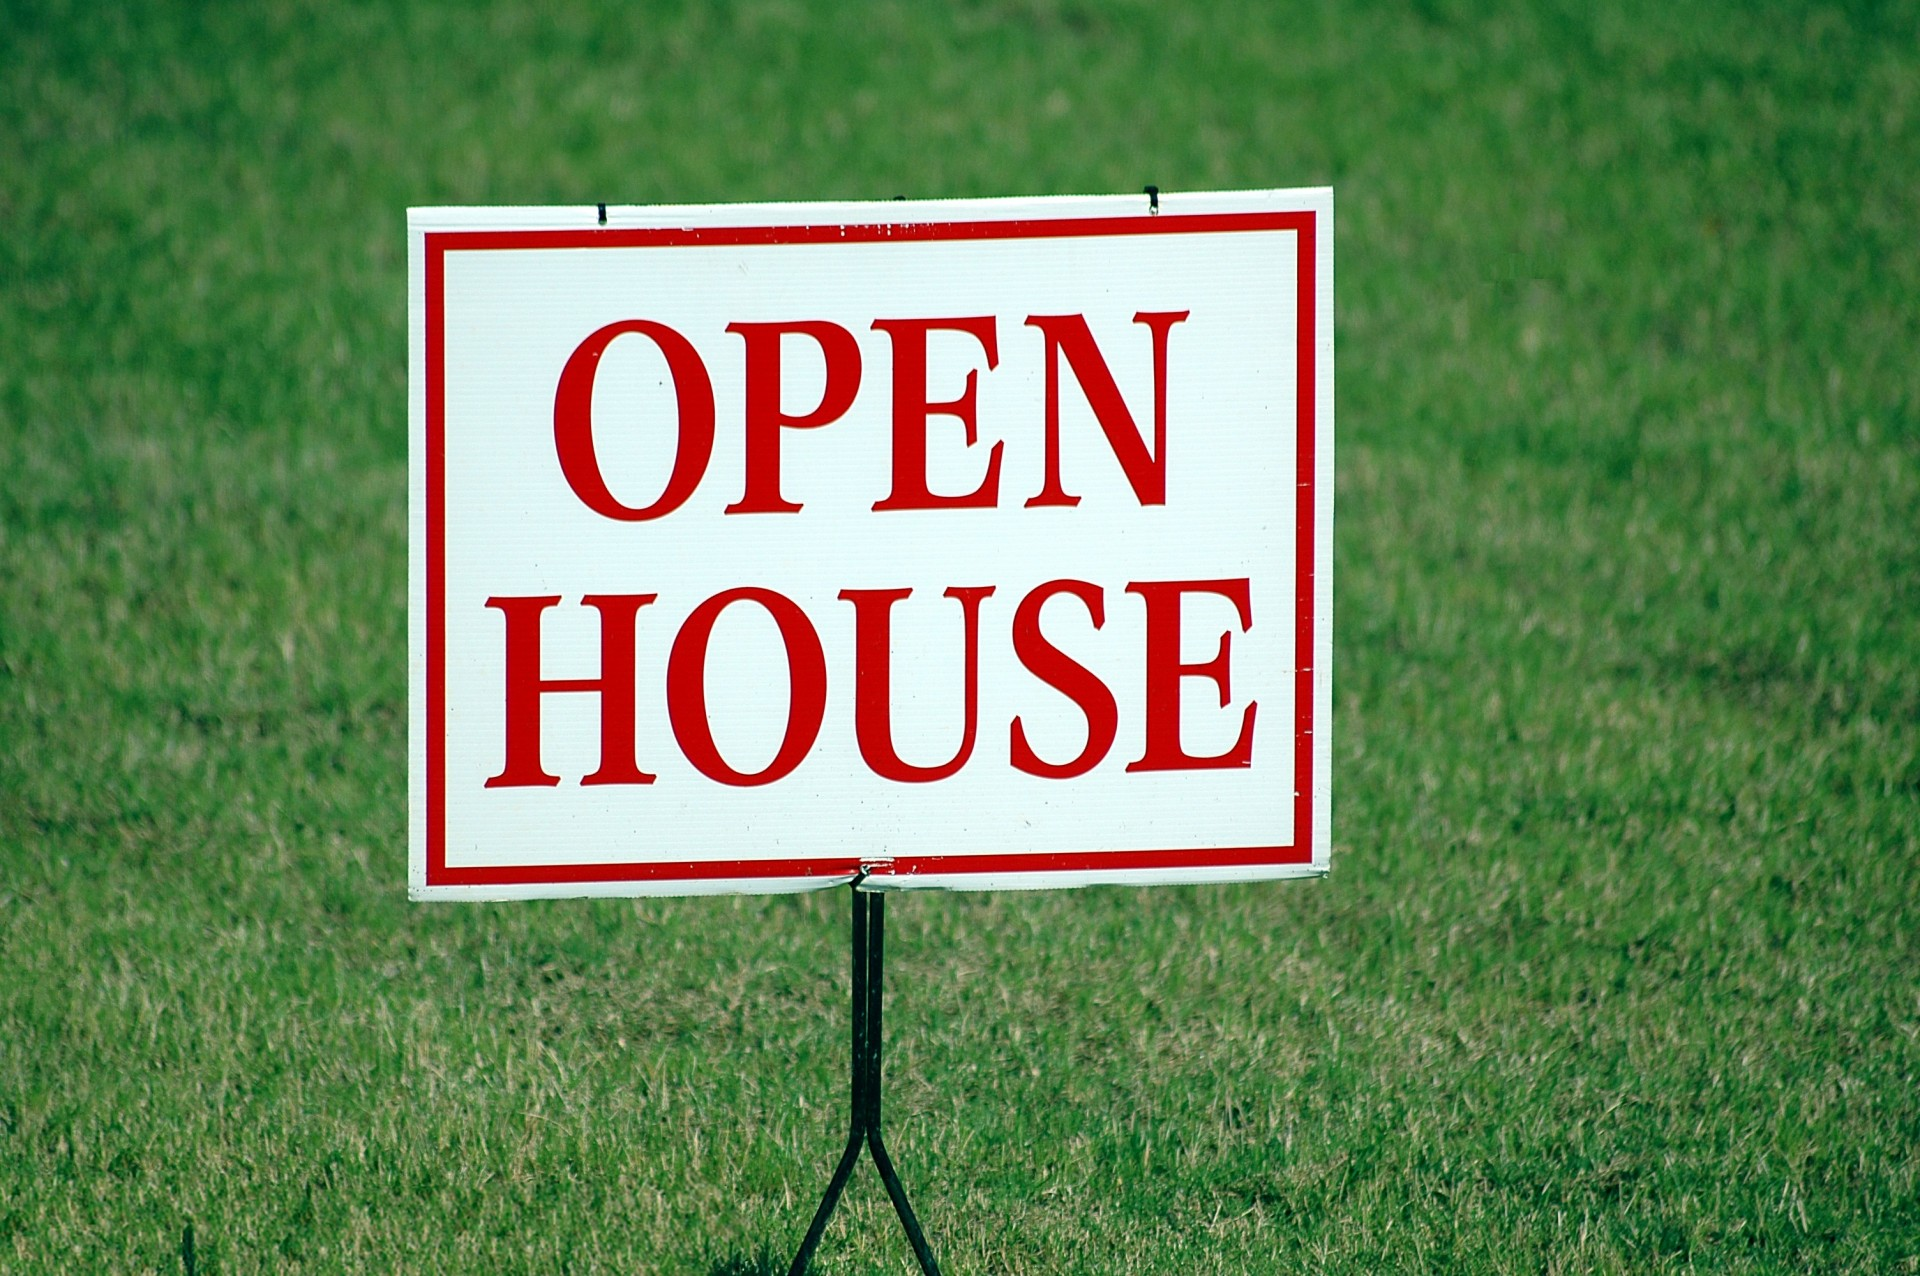 Five Steps to Obtain Referrals From Every Open House